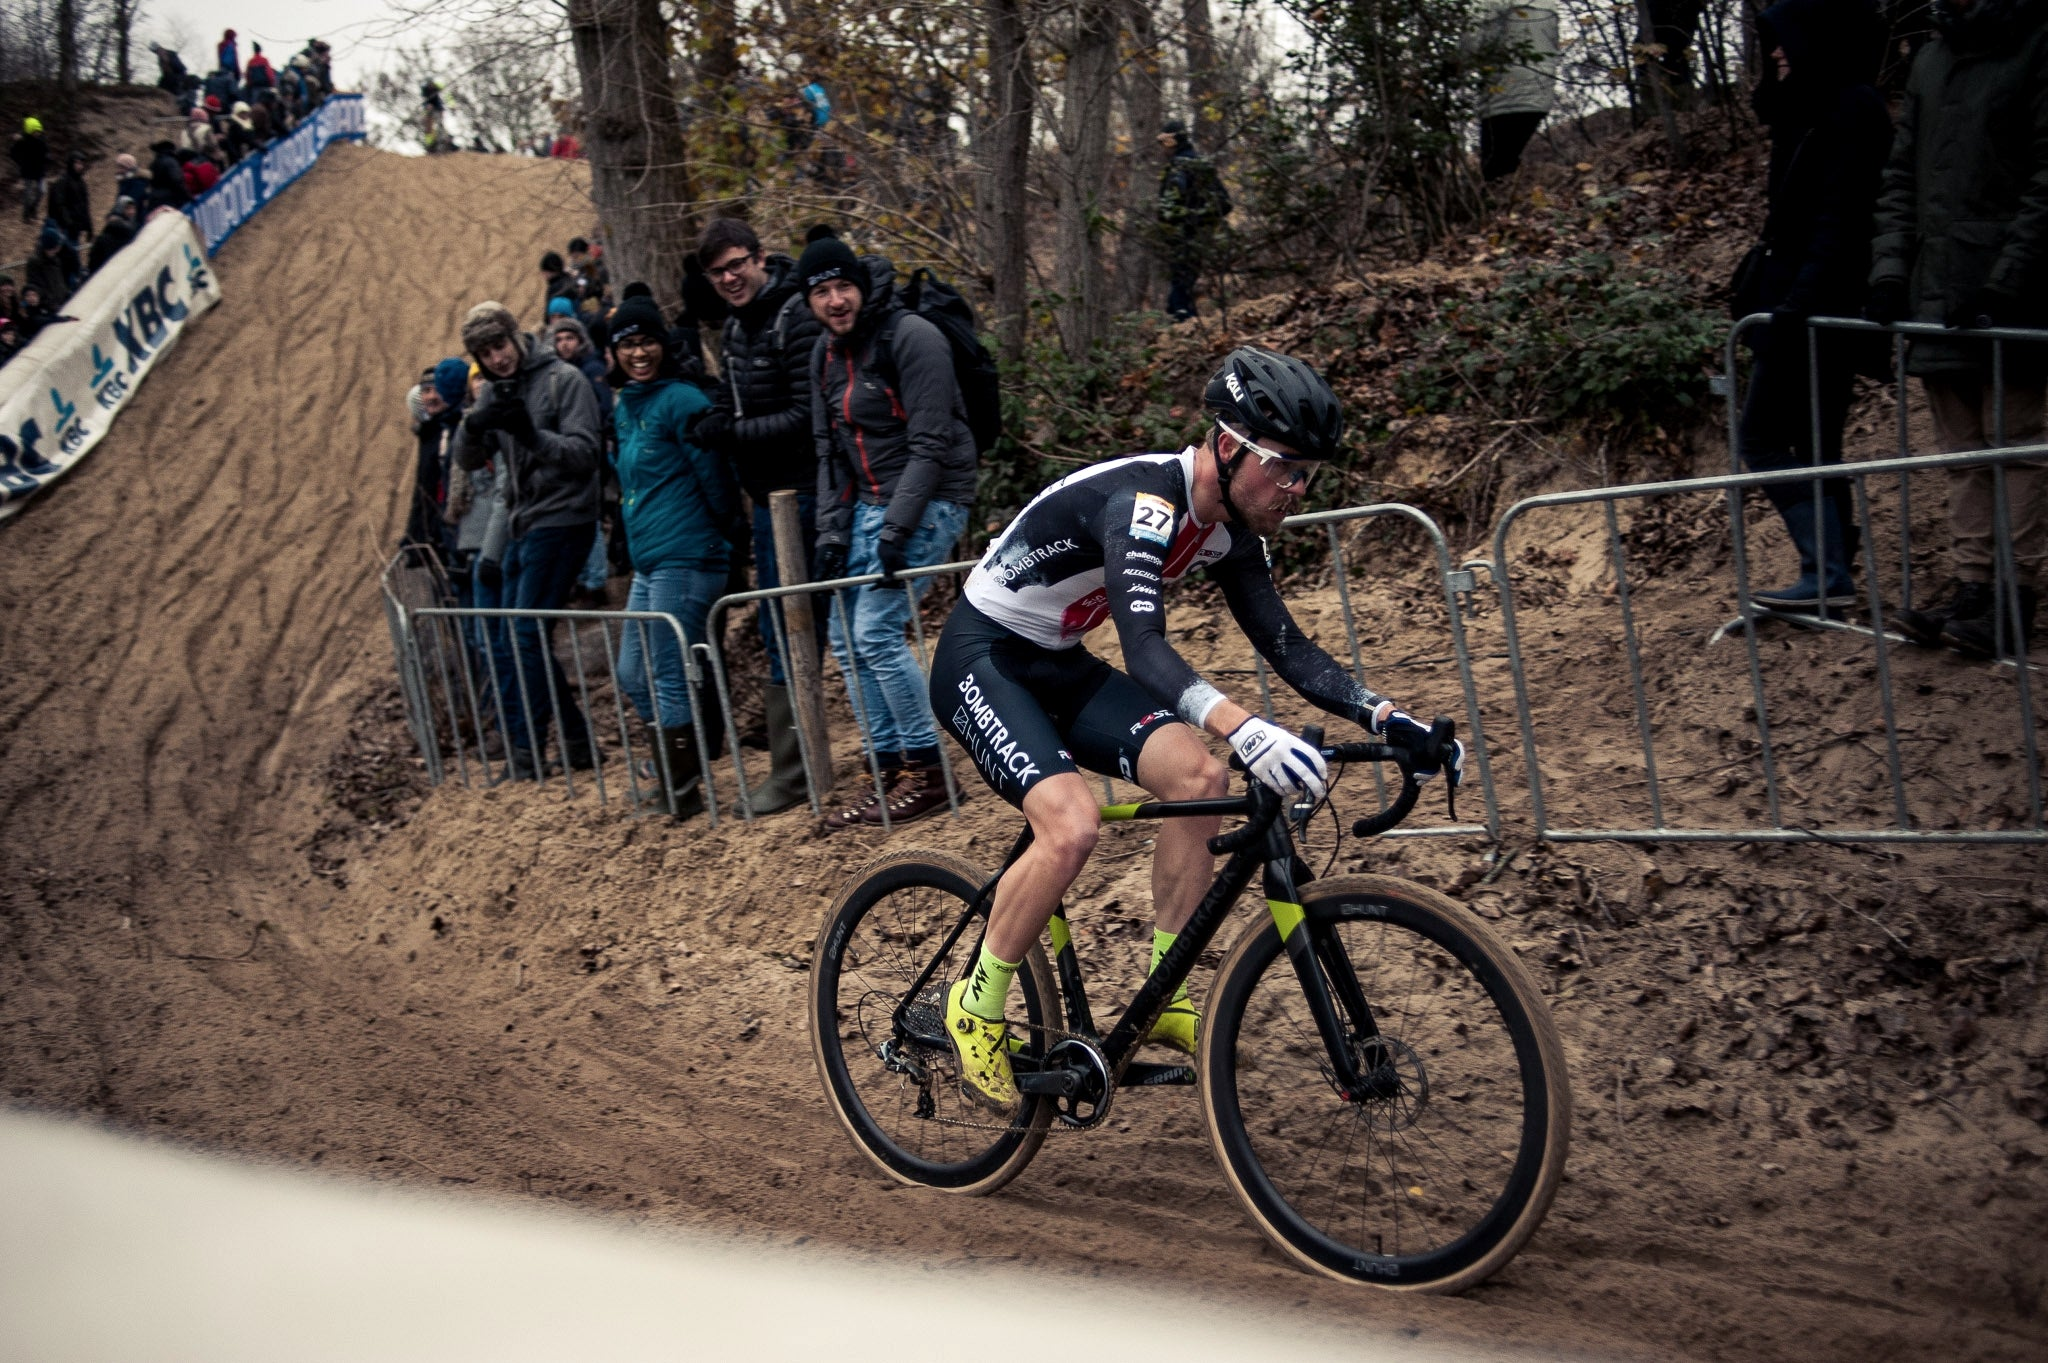 HUNT CX CYCLOCROSS GOSSE VAN DER MEER WORLD CUP UCI